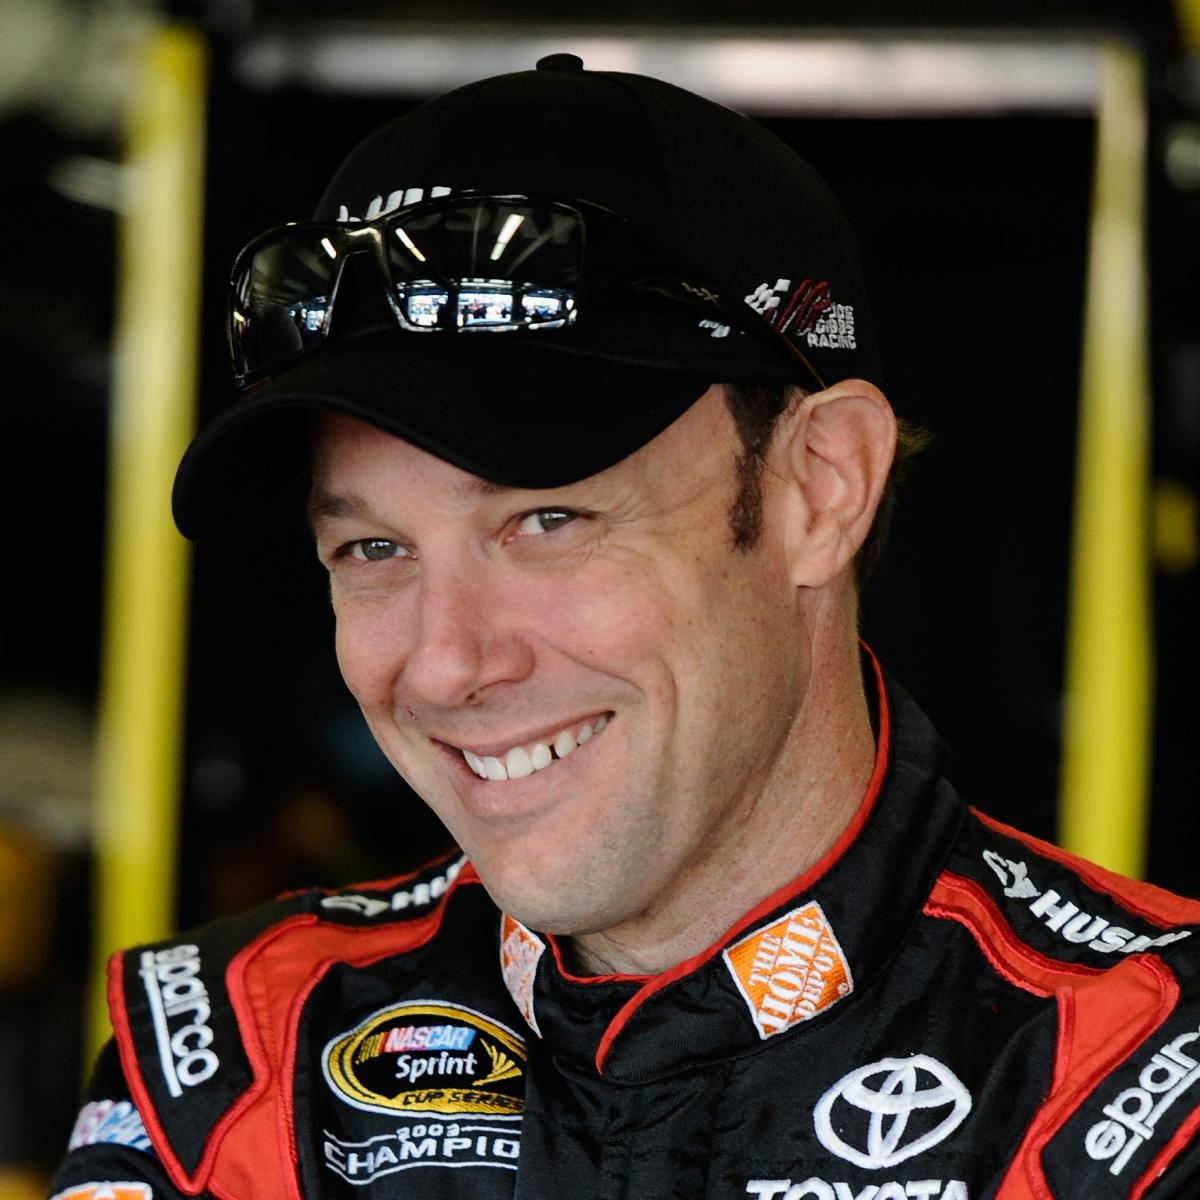 Who Will Follow Matt Kenseth's Lead And Change Teams After